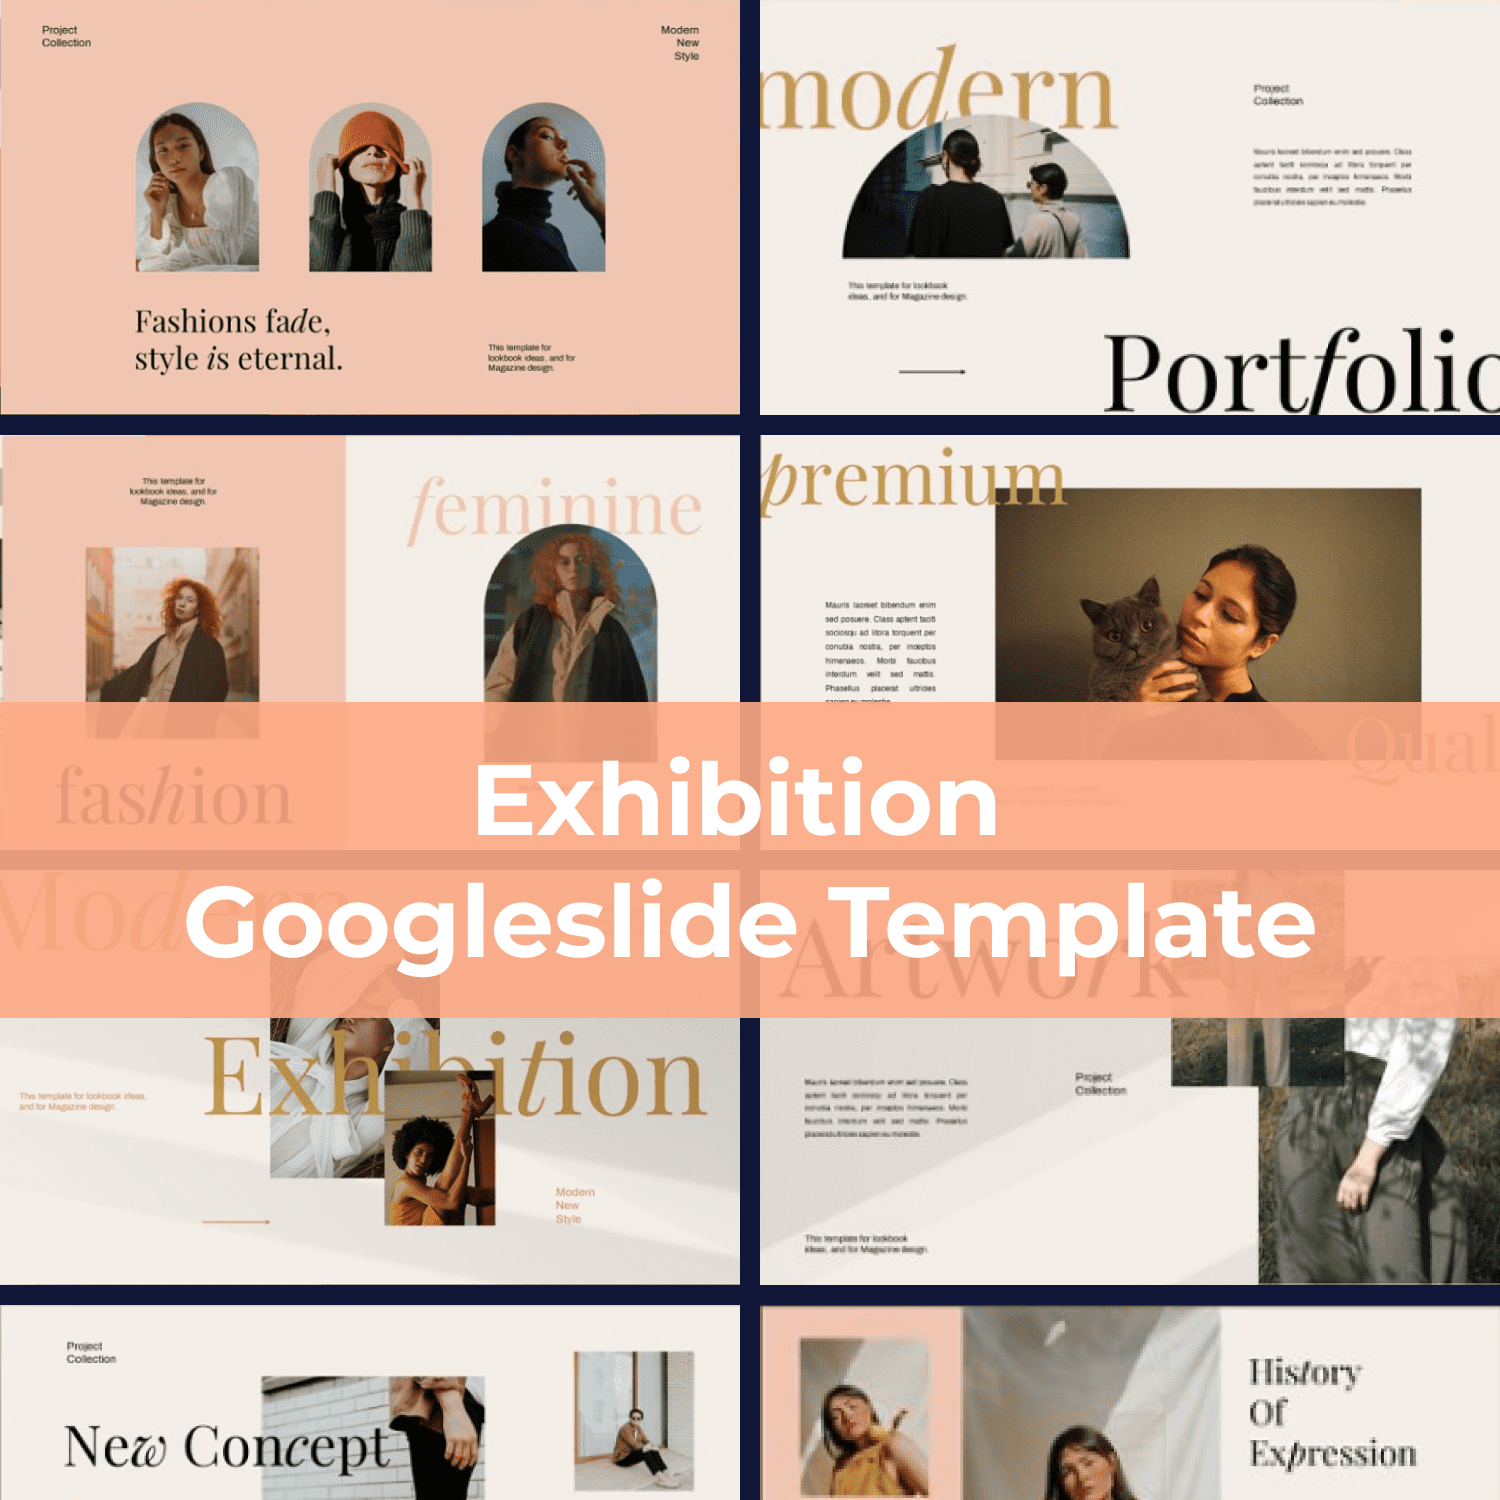 Exhibition Googleslide Template main cover.